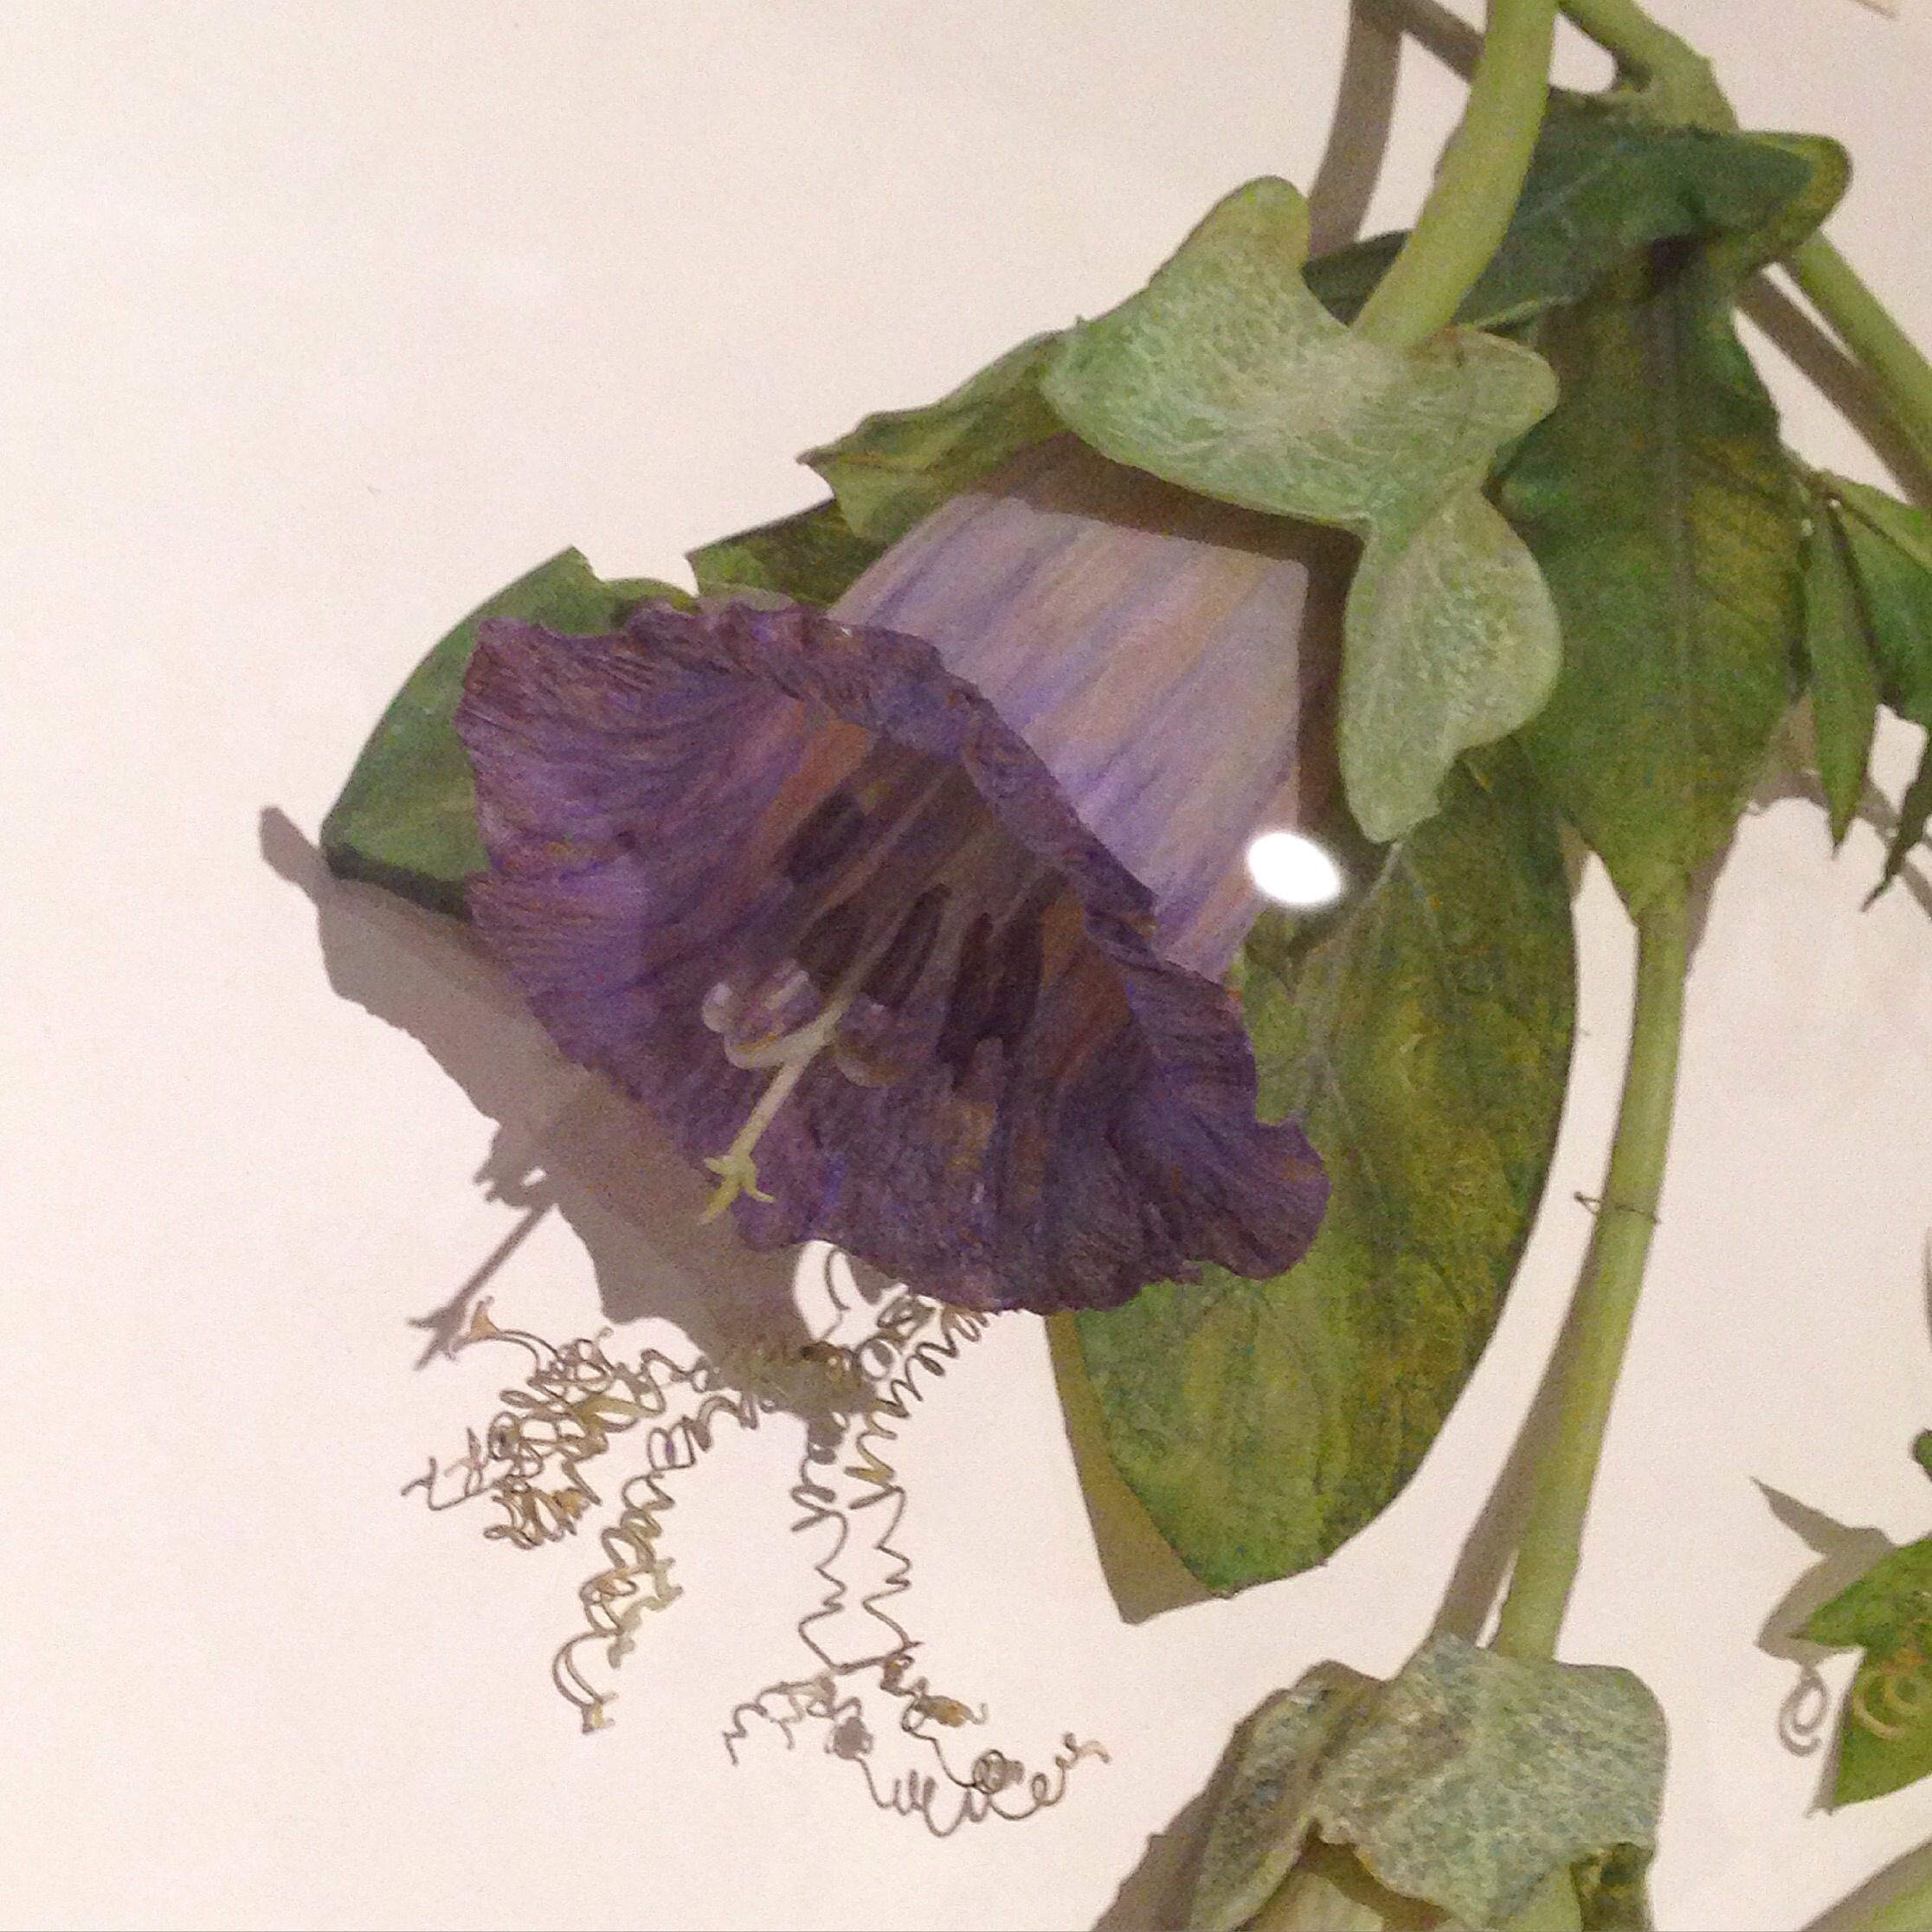 One of the lovely glass flowers seen on my visit.